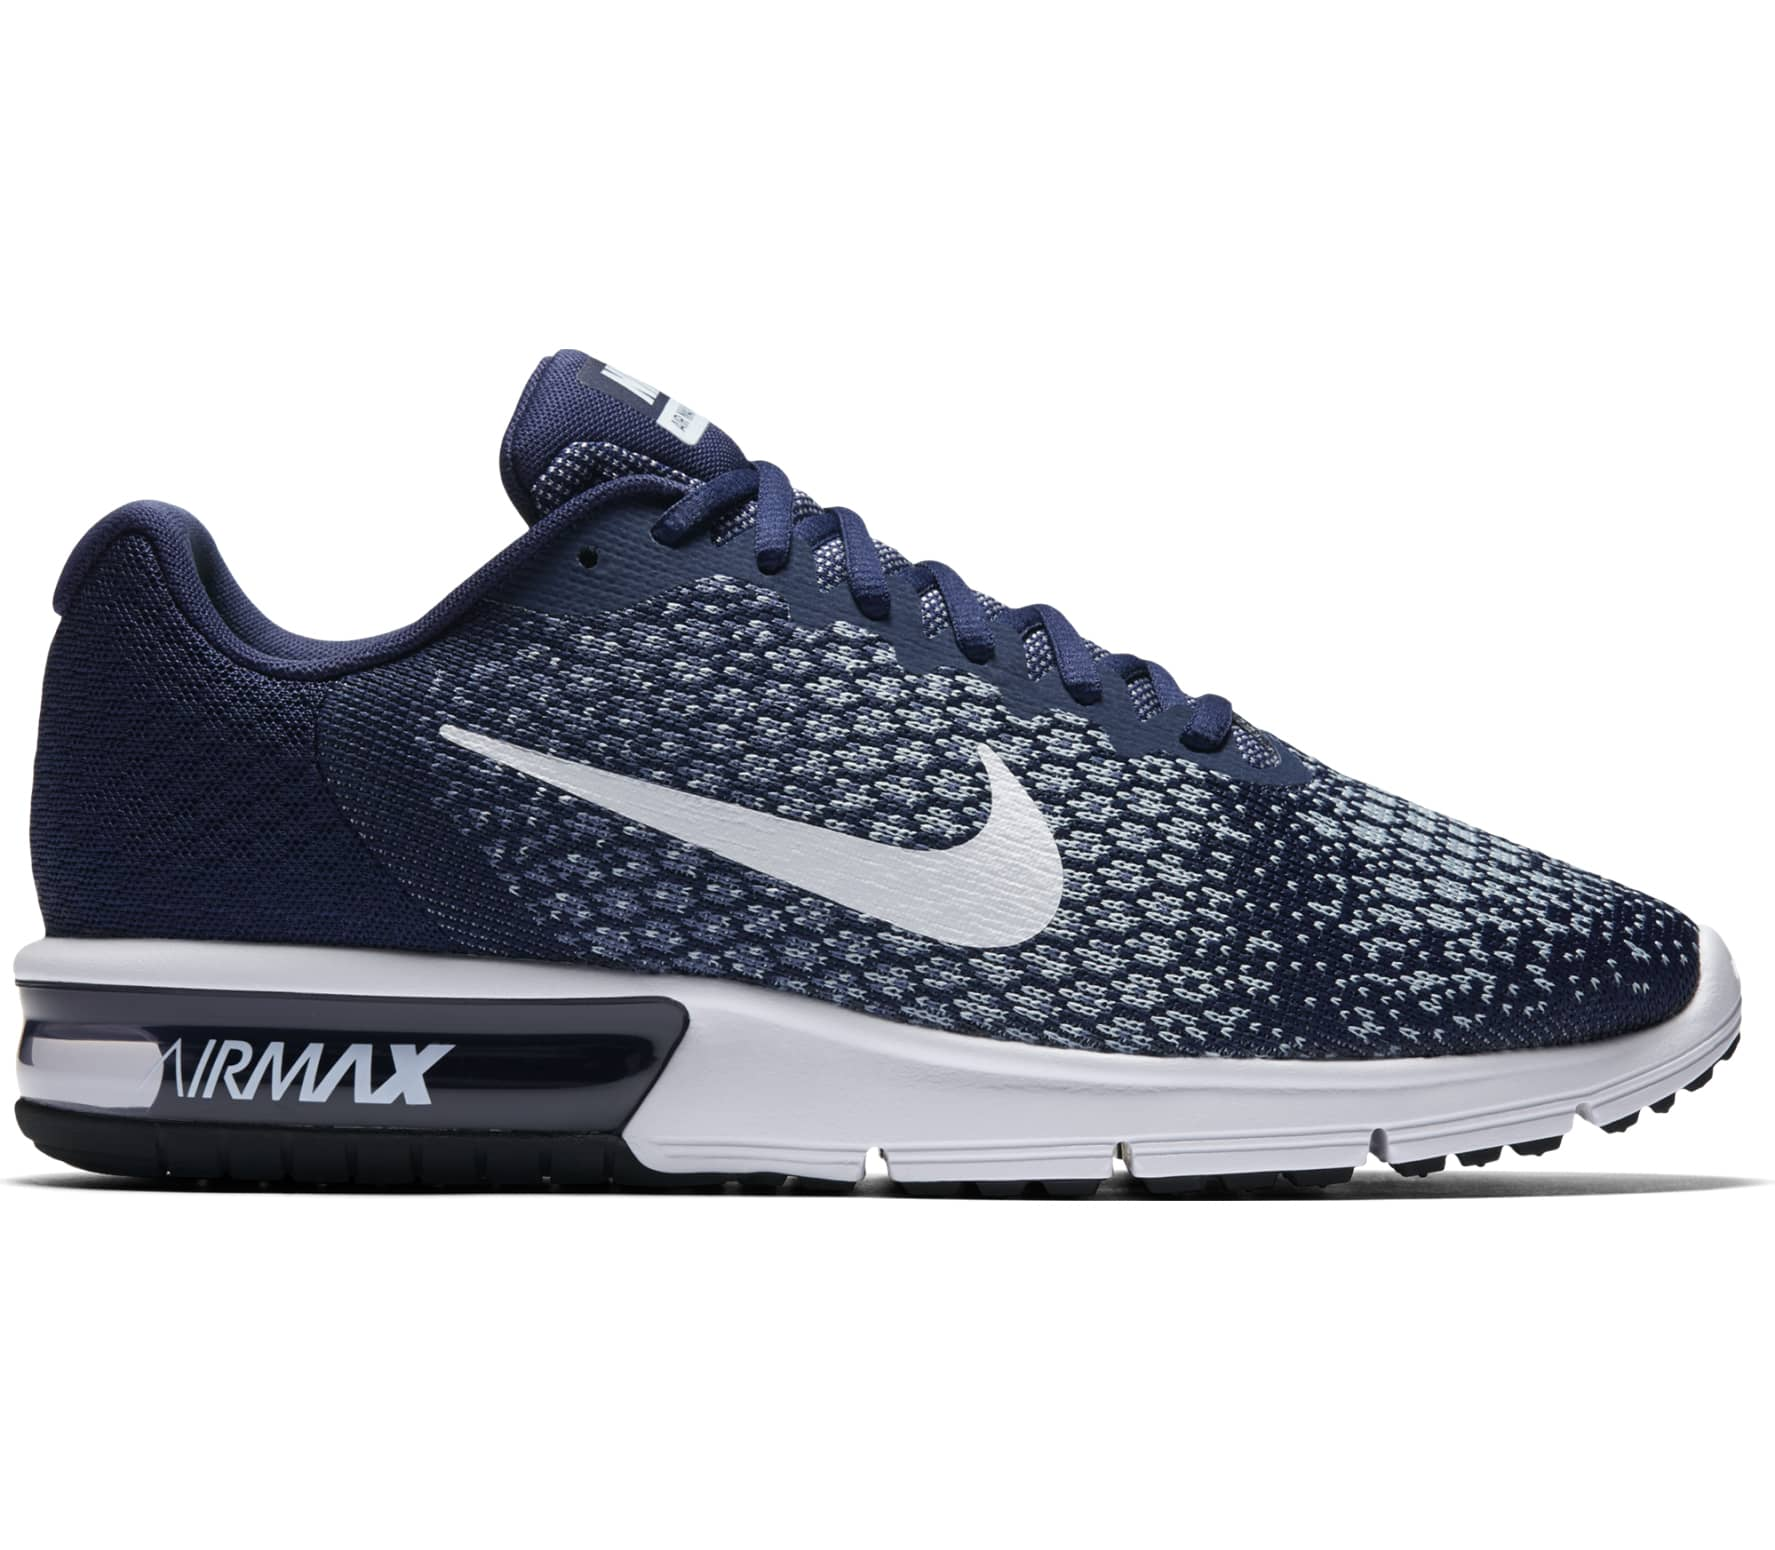 on sale 7f8da 71e16 Nike - Air Max Sequent 2 men s running shoes (blue)